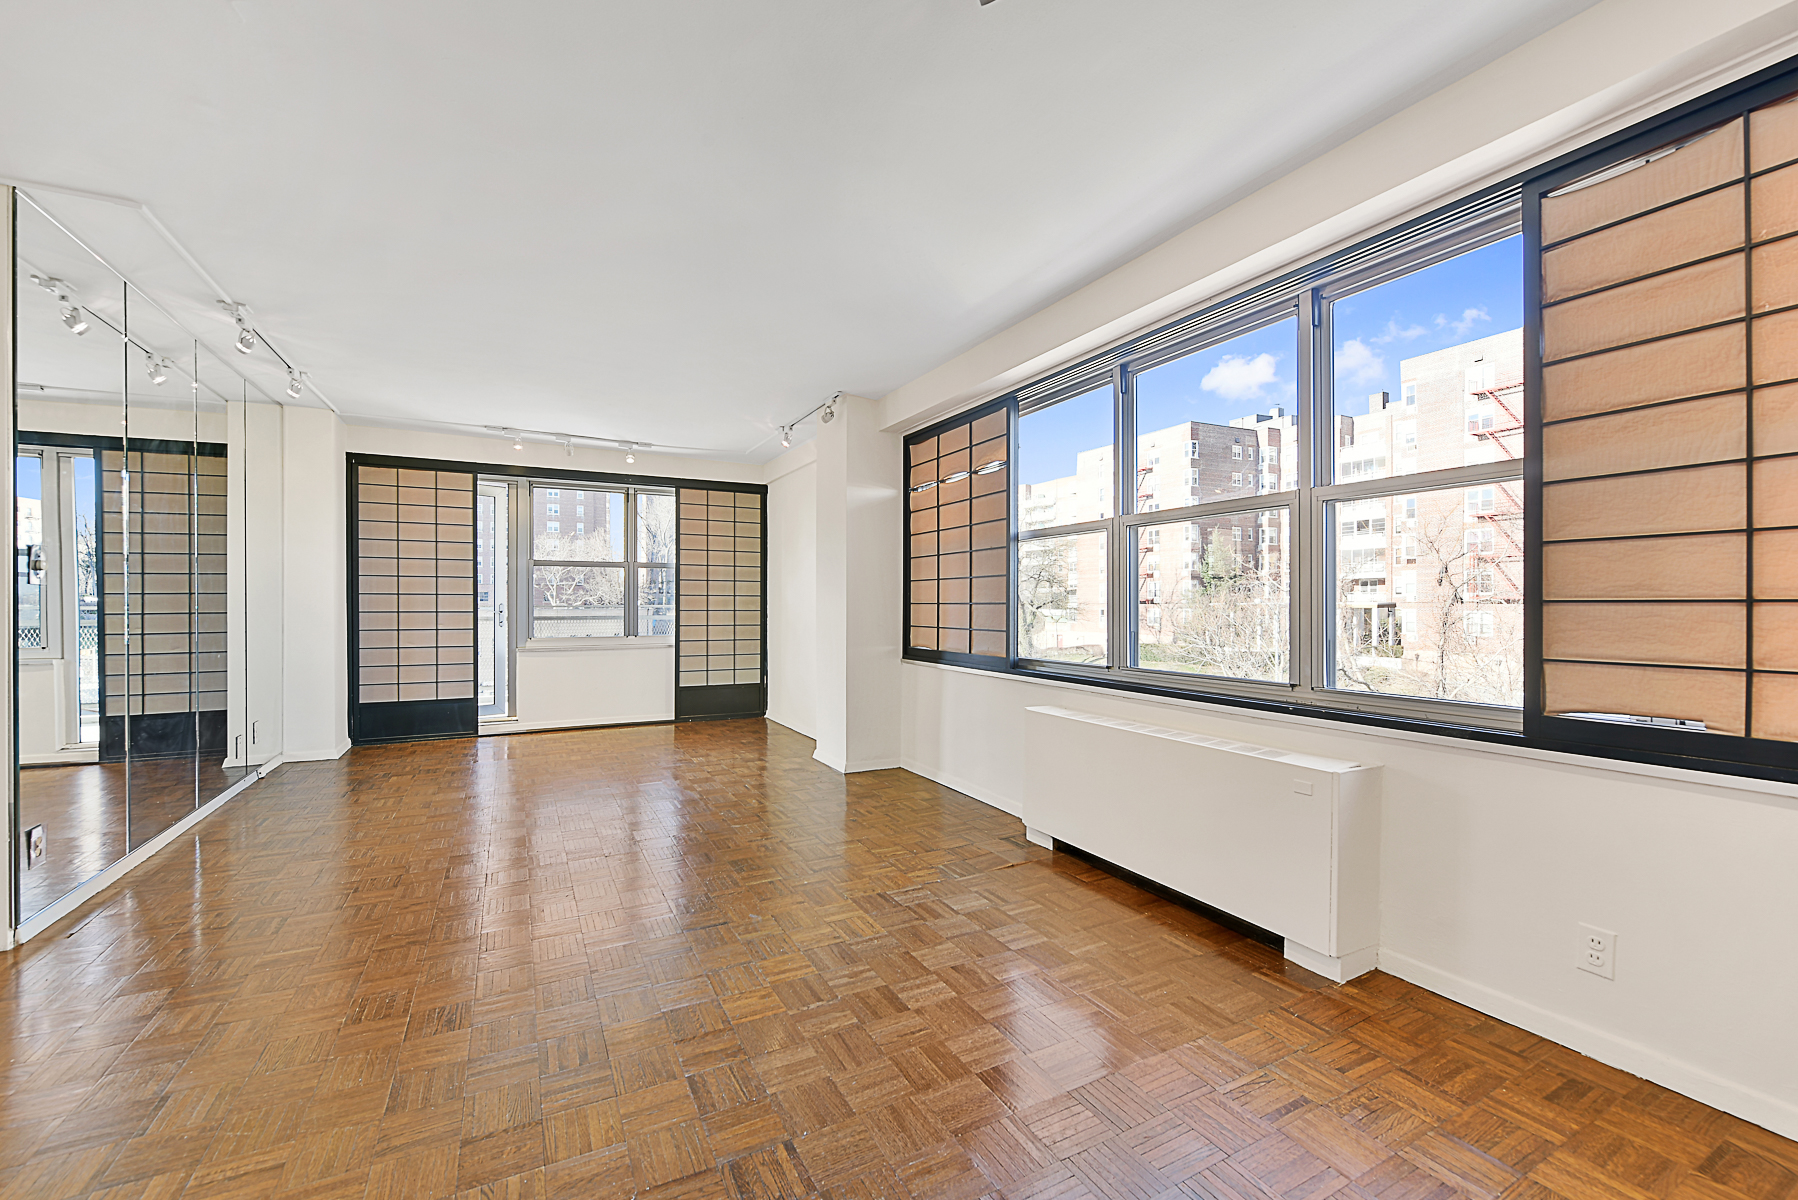 Cooperativa por un Venta en Corner Layout Large 3 BR with Terrace in Doorman Co-op 555 Kappock Street 5E Riverdale, Nueva York, 10463 Estados Unidos